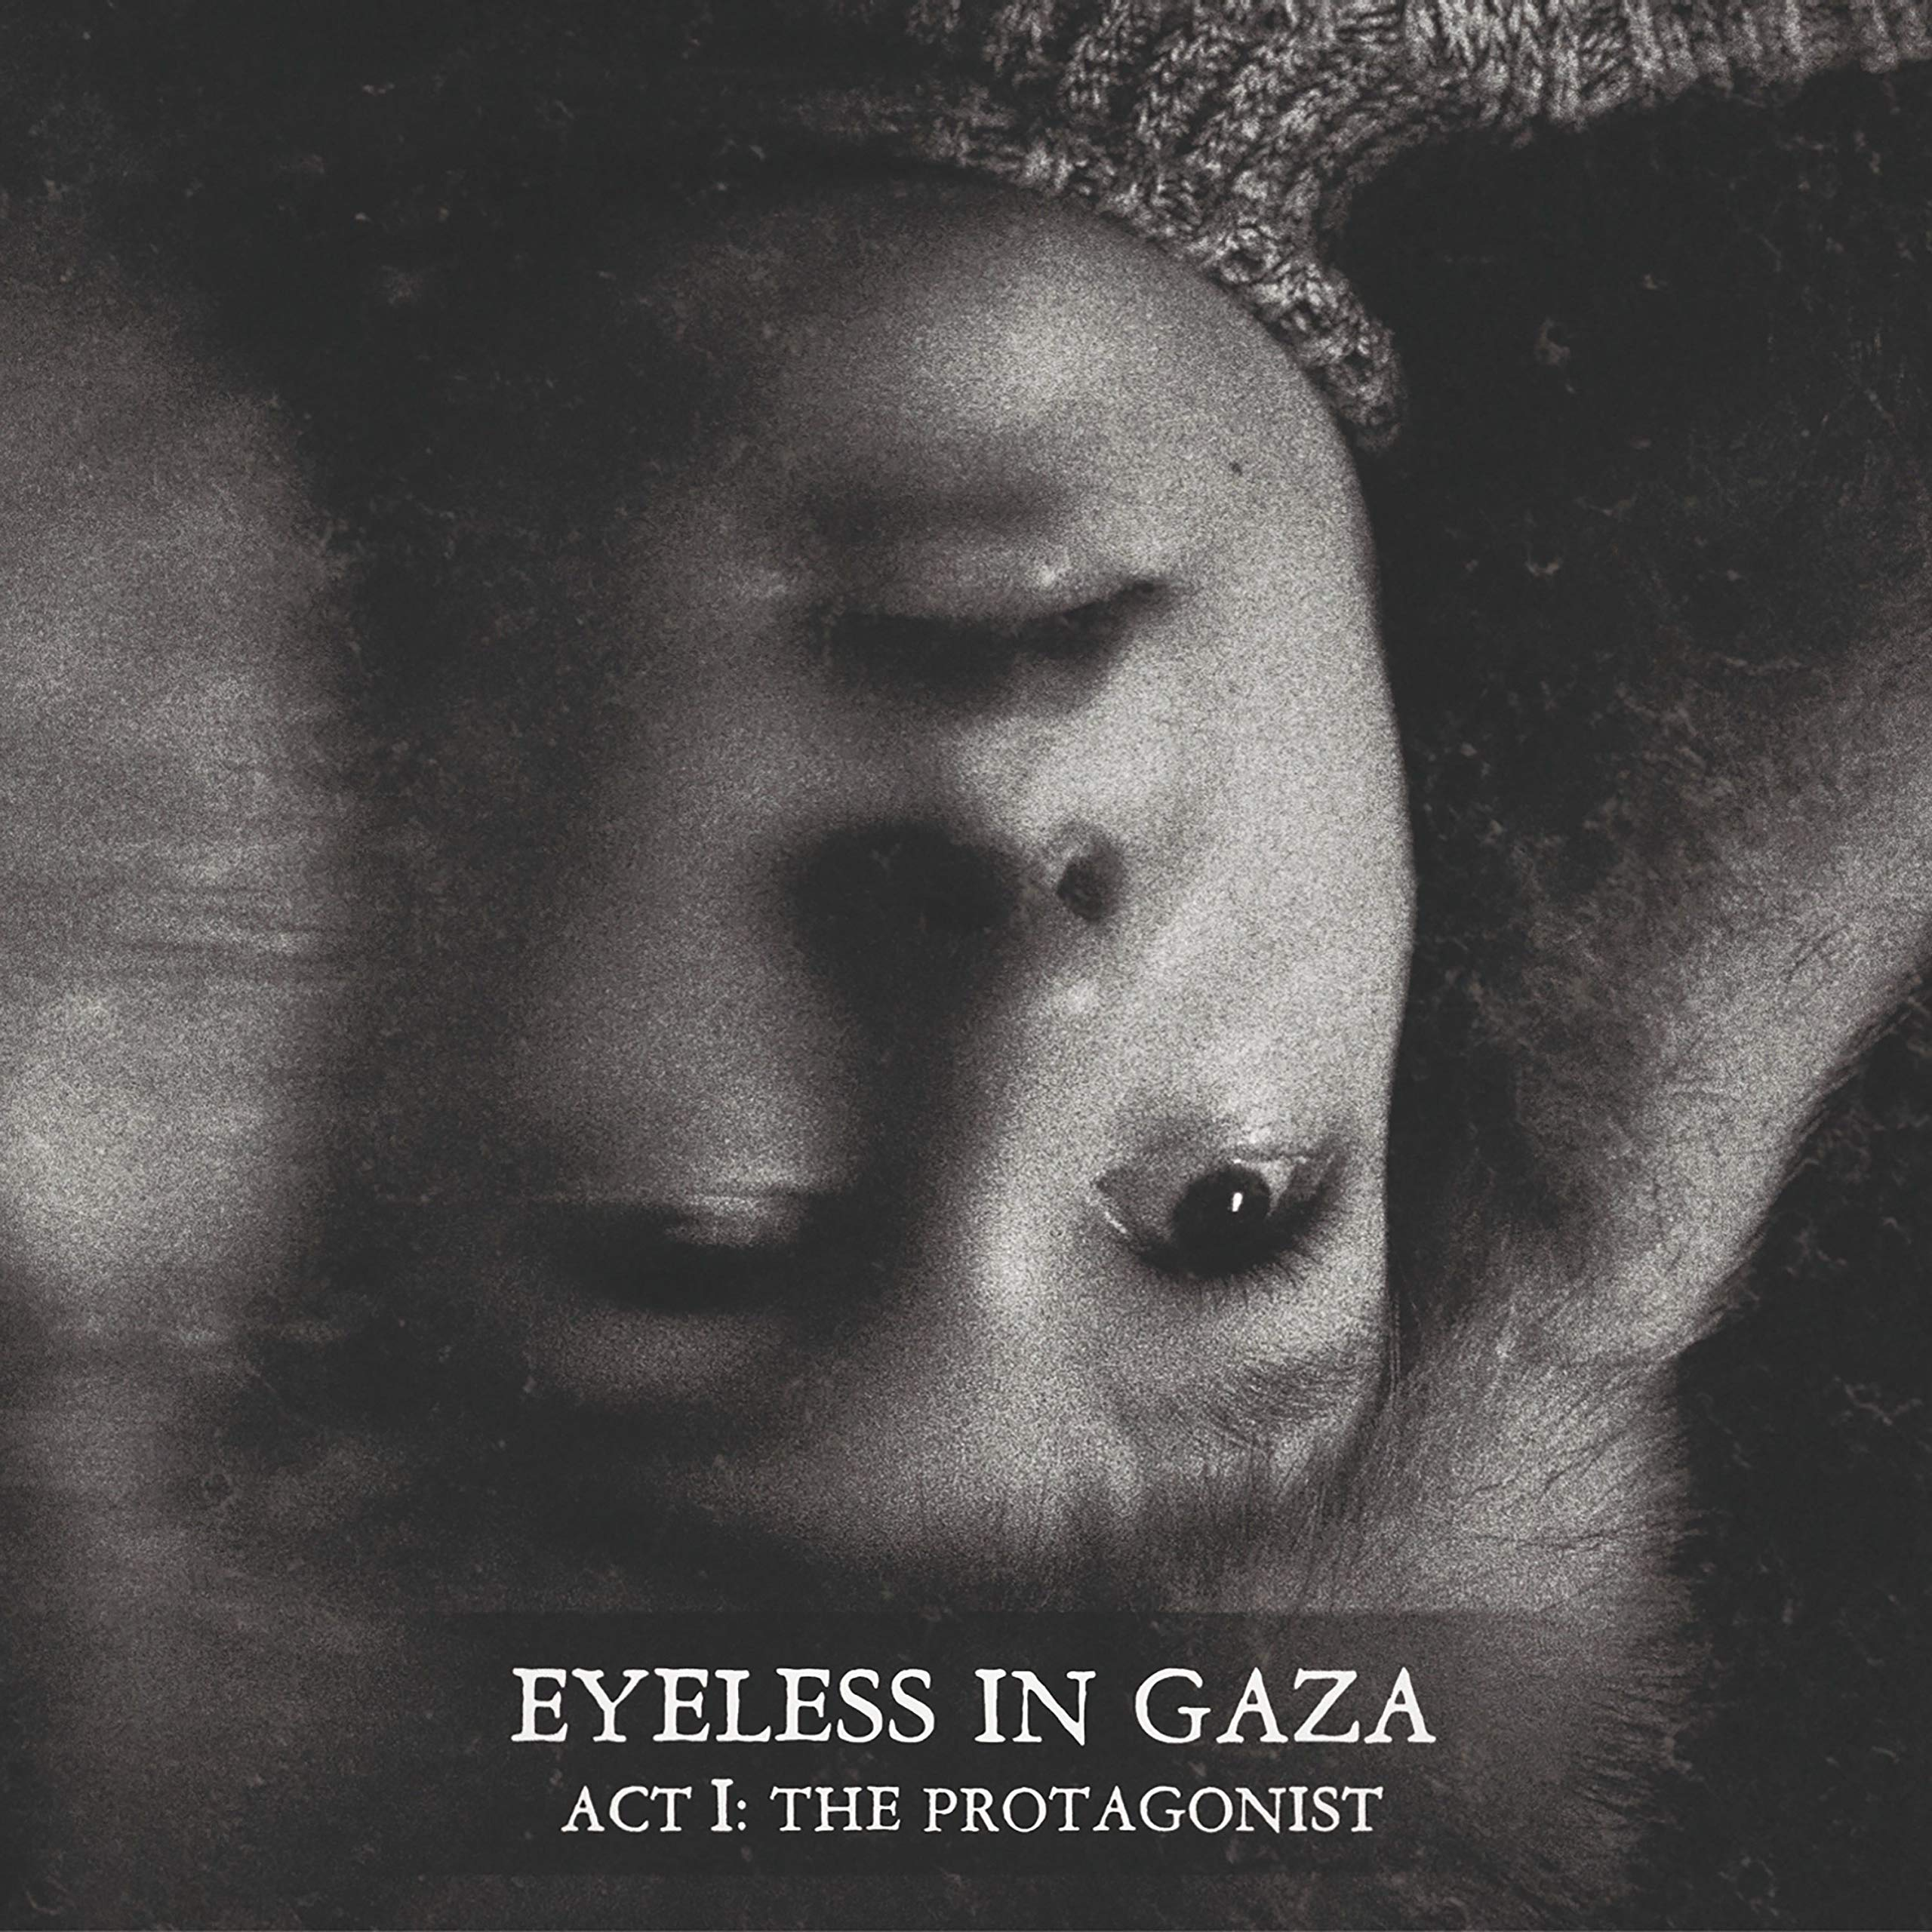 Eyeless In Gaza - Act I: The Protagonist (2020) [FLAC] Download